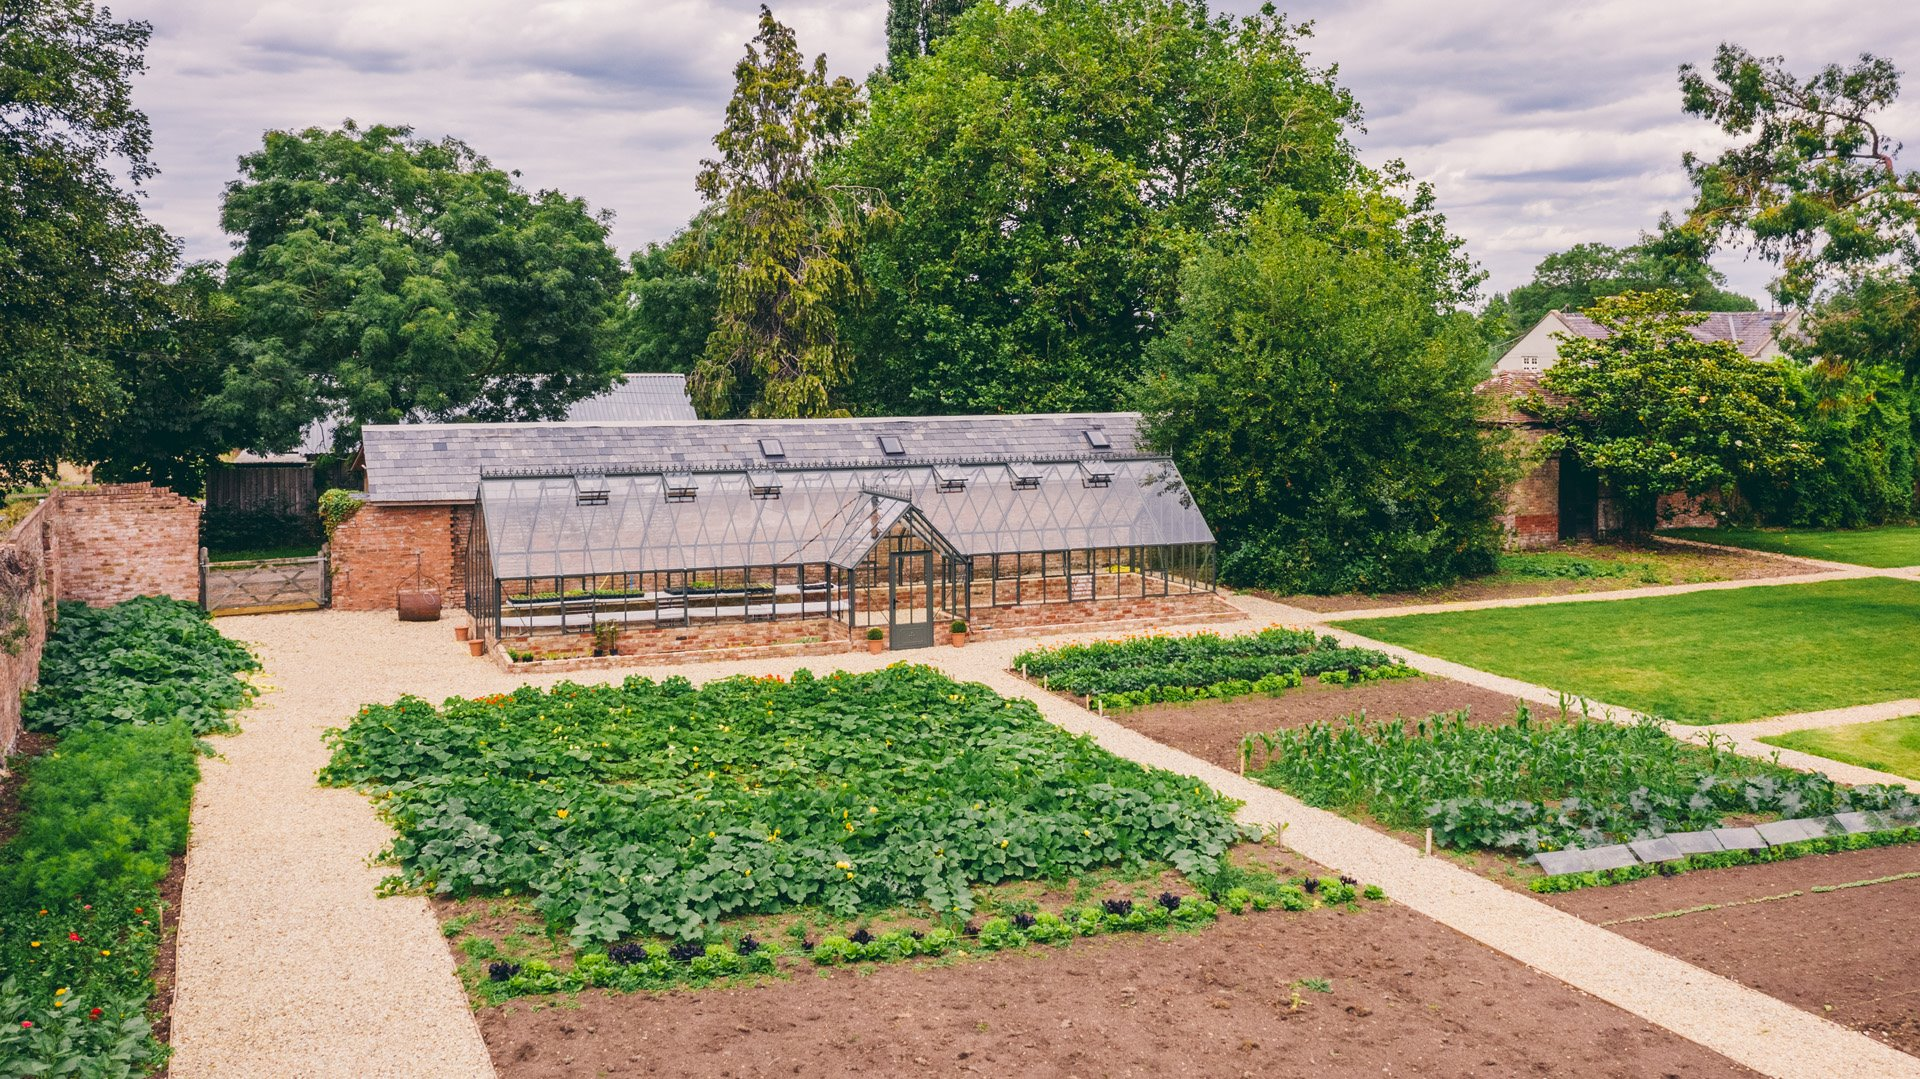 Walled garden and glass house from above. All events at elmore court include home grown food